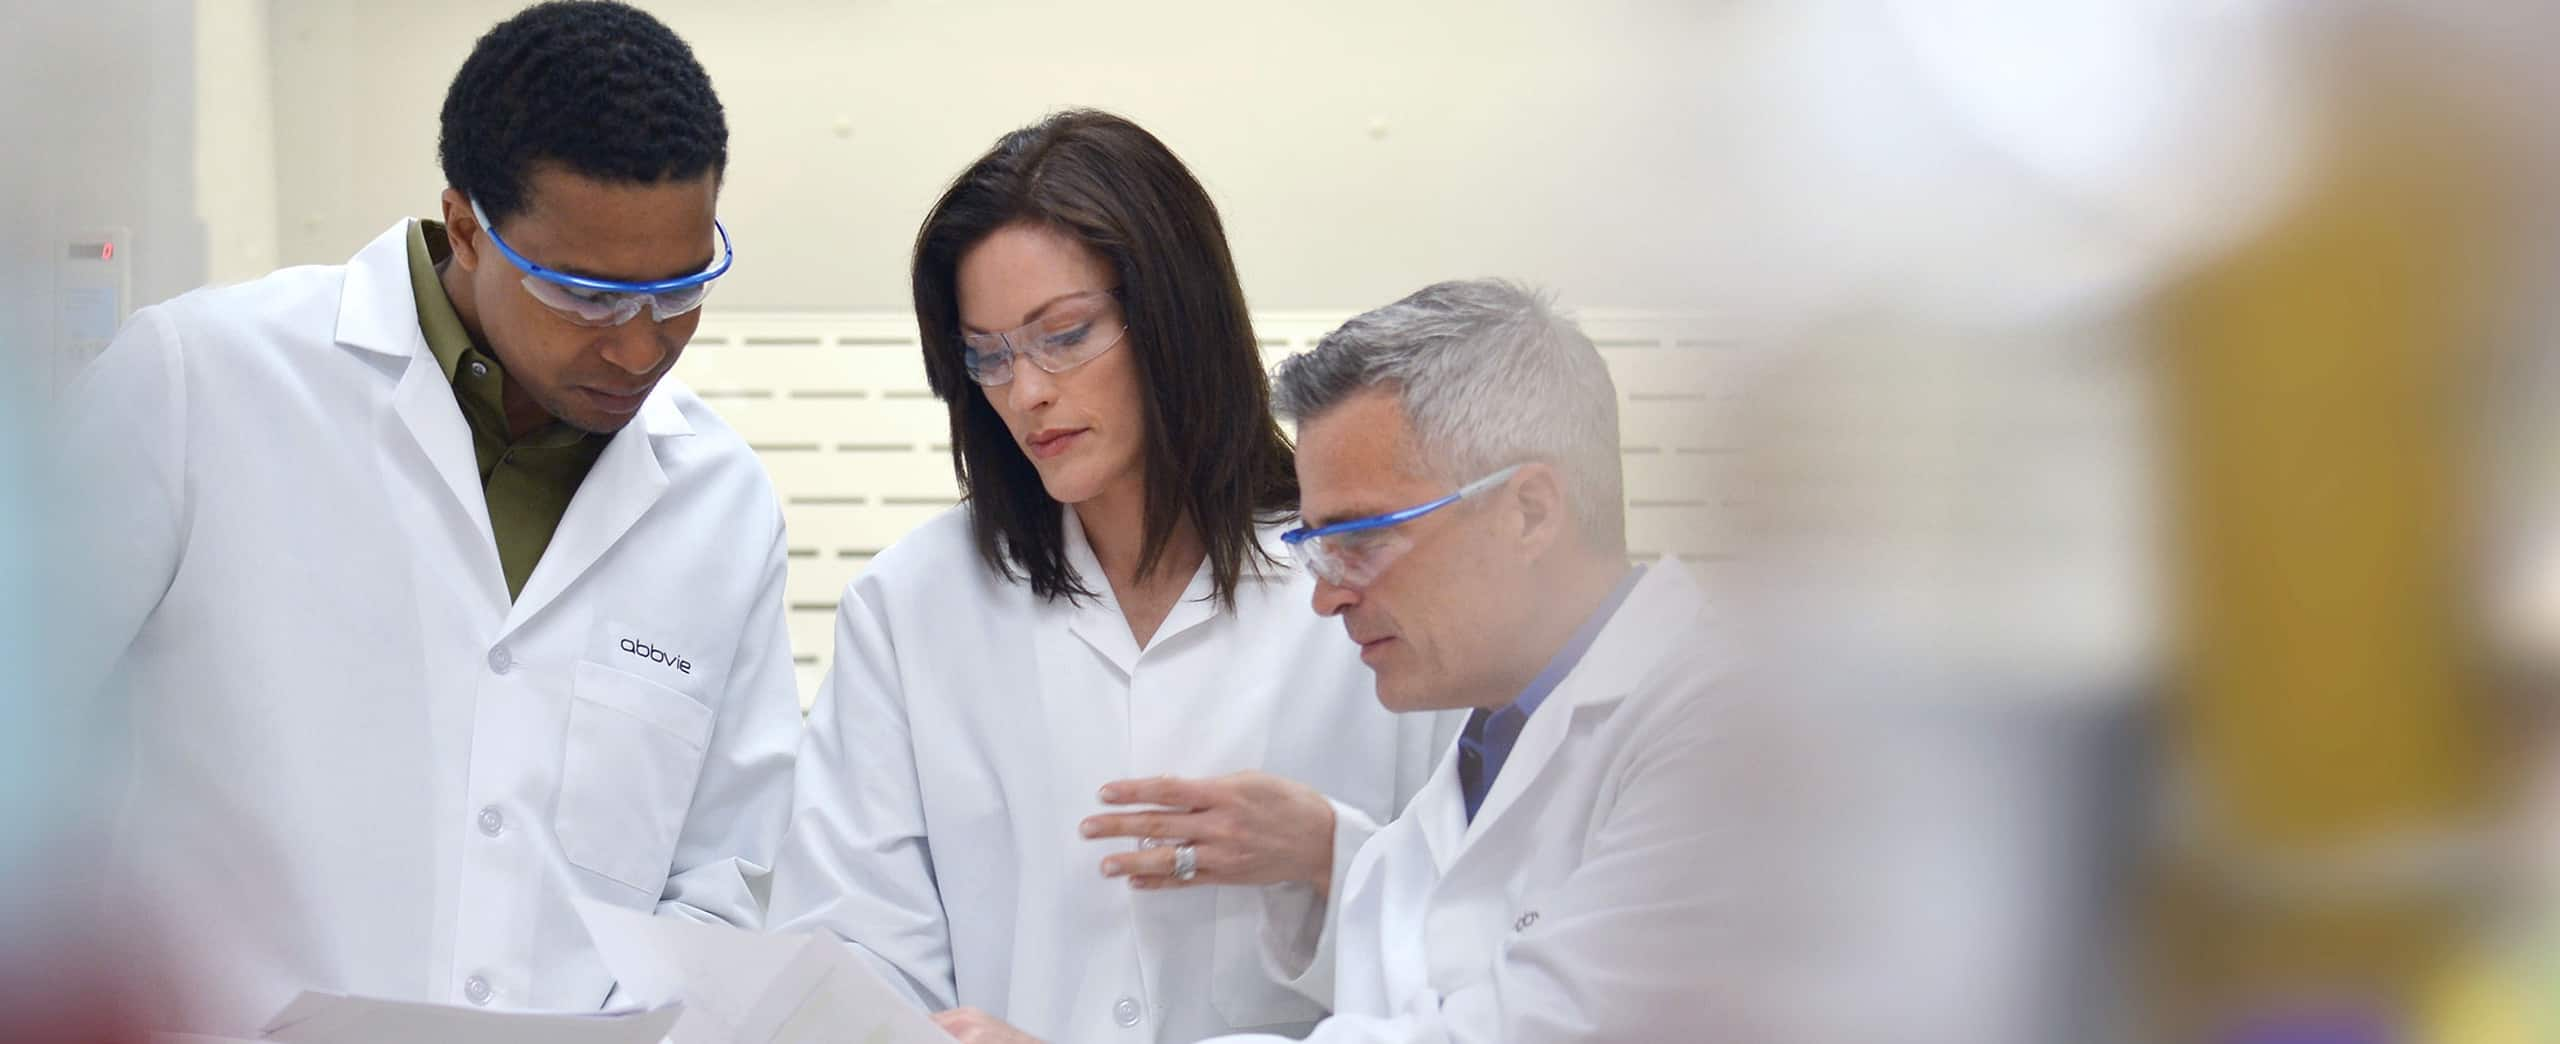 A woman and two men in abbvie labcoats reading off a sheet of paper